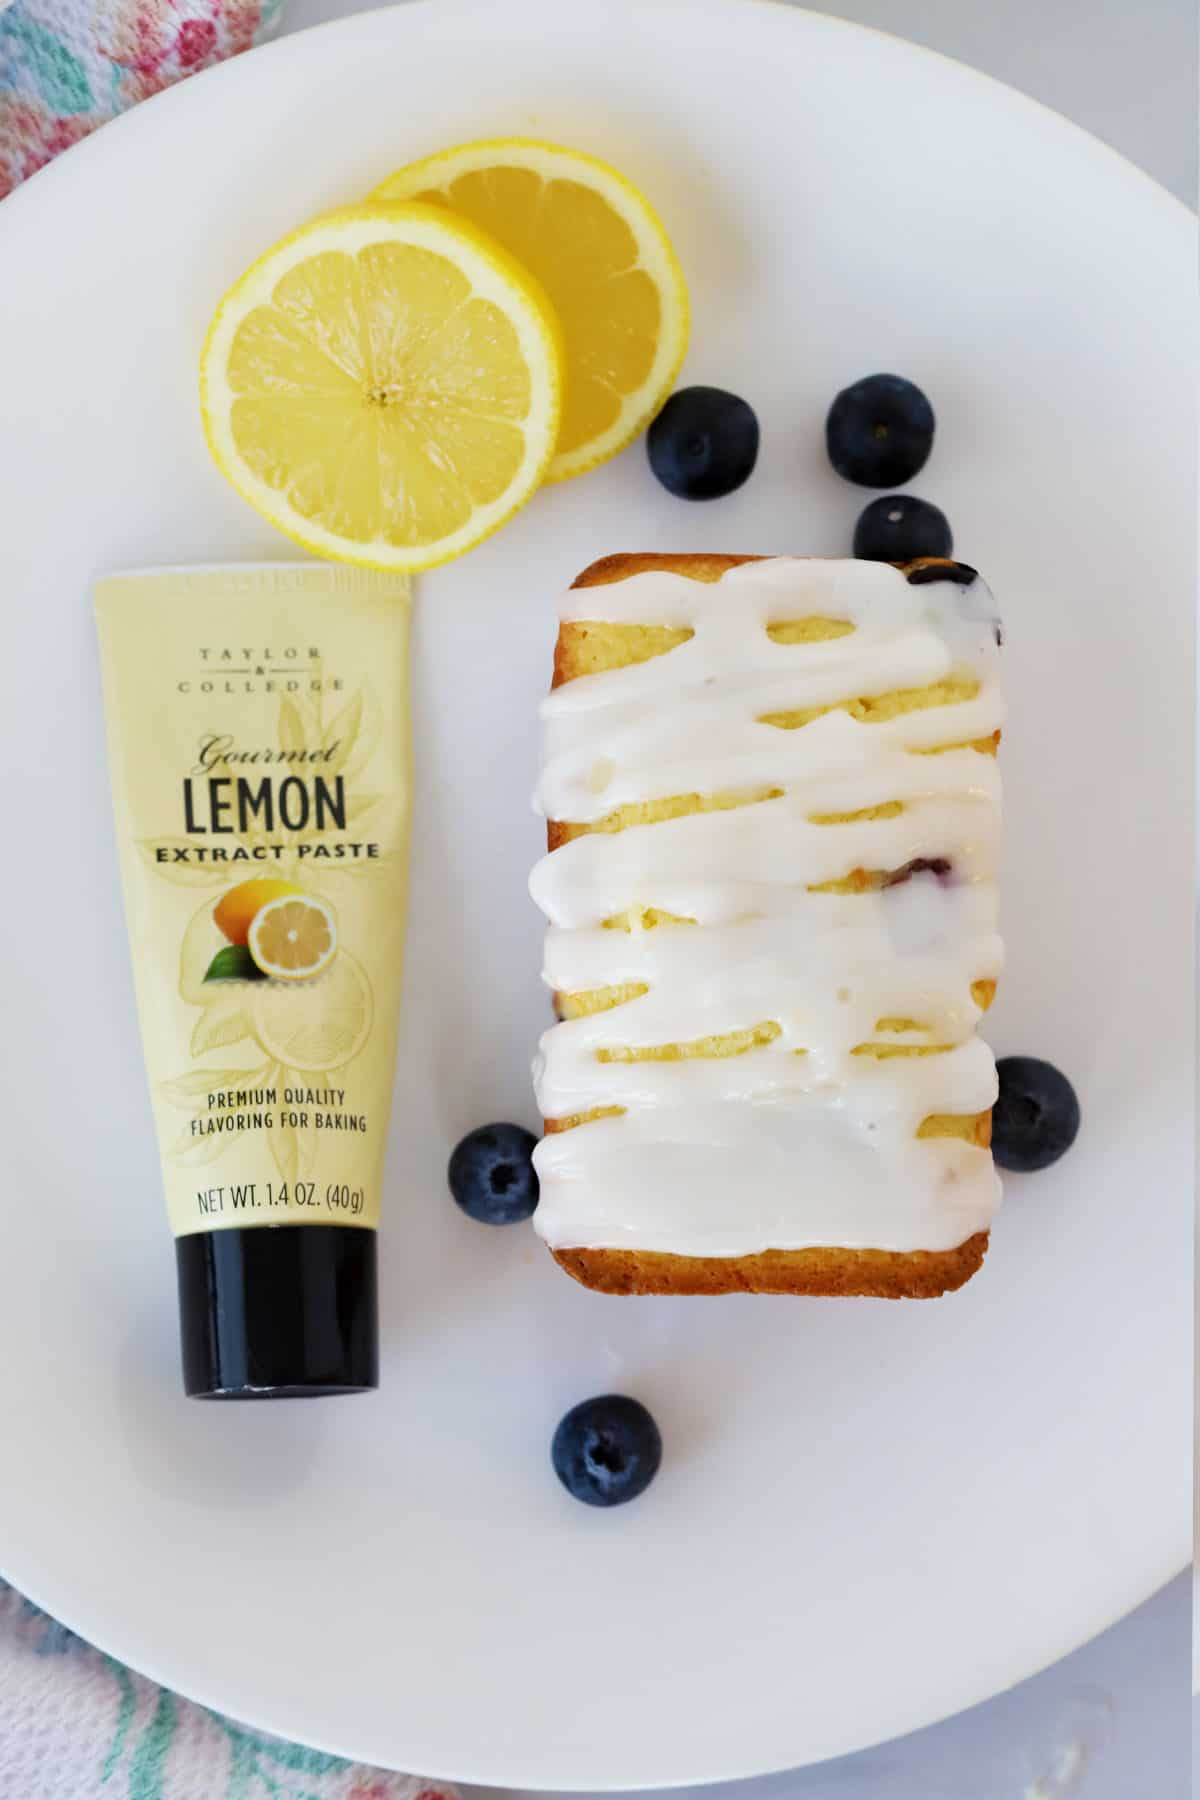 A white plate with a mini loaf covered in lemon glaze next to a bottle of lemon paste, fresh blueberries and a sliced lemon.